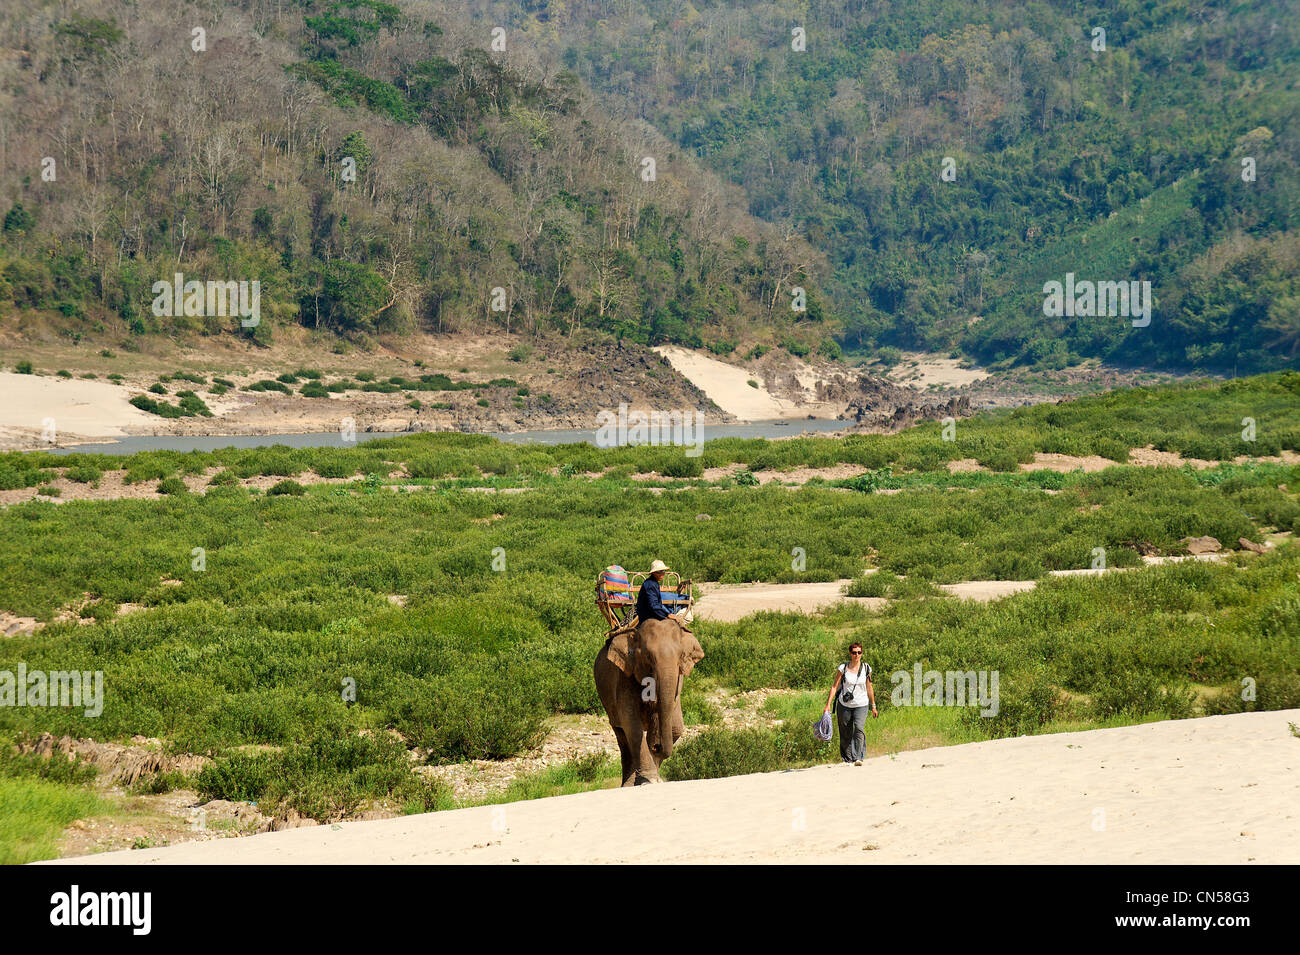 Laos, Sainyabuli Province, Mekong River, trek on elephant back, walking on a sandbar - Stock Image